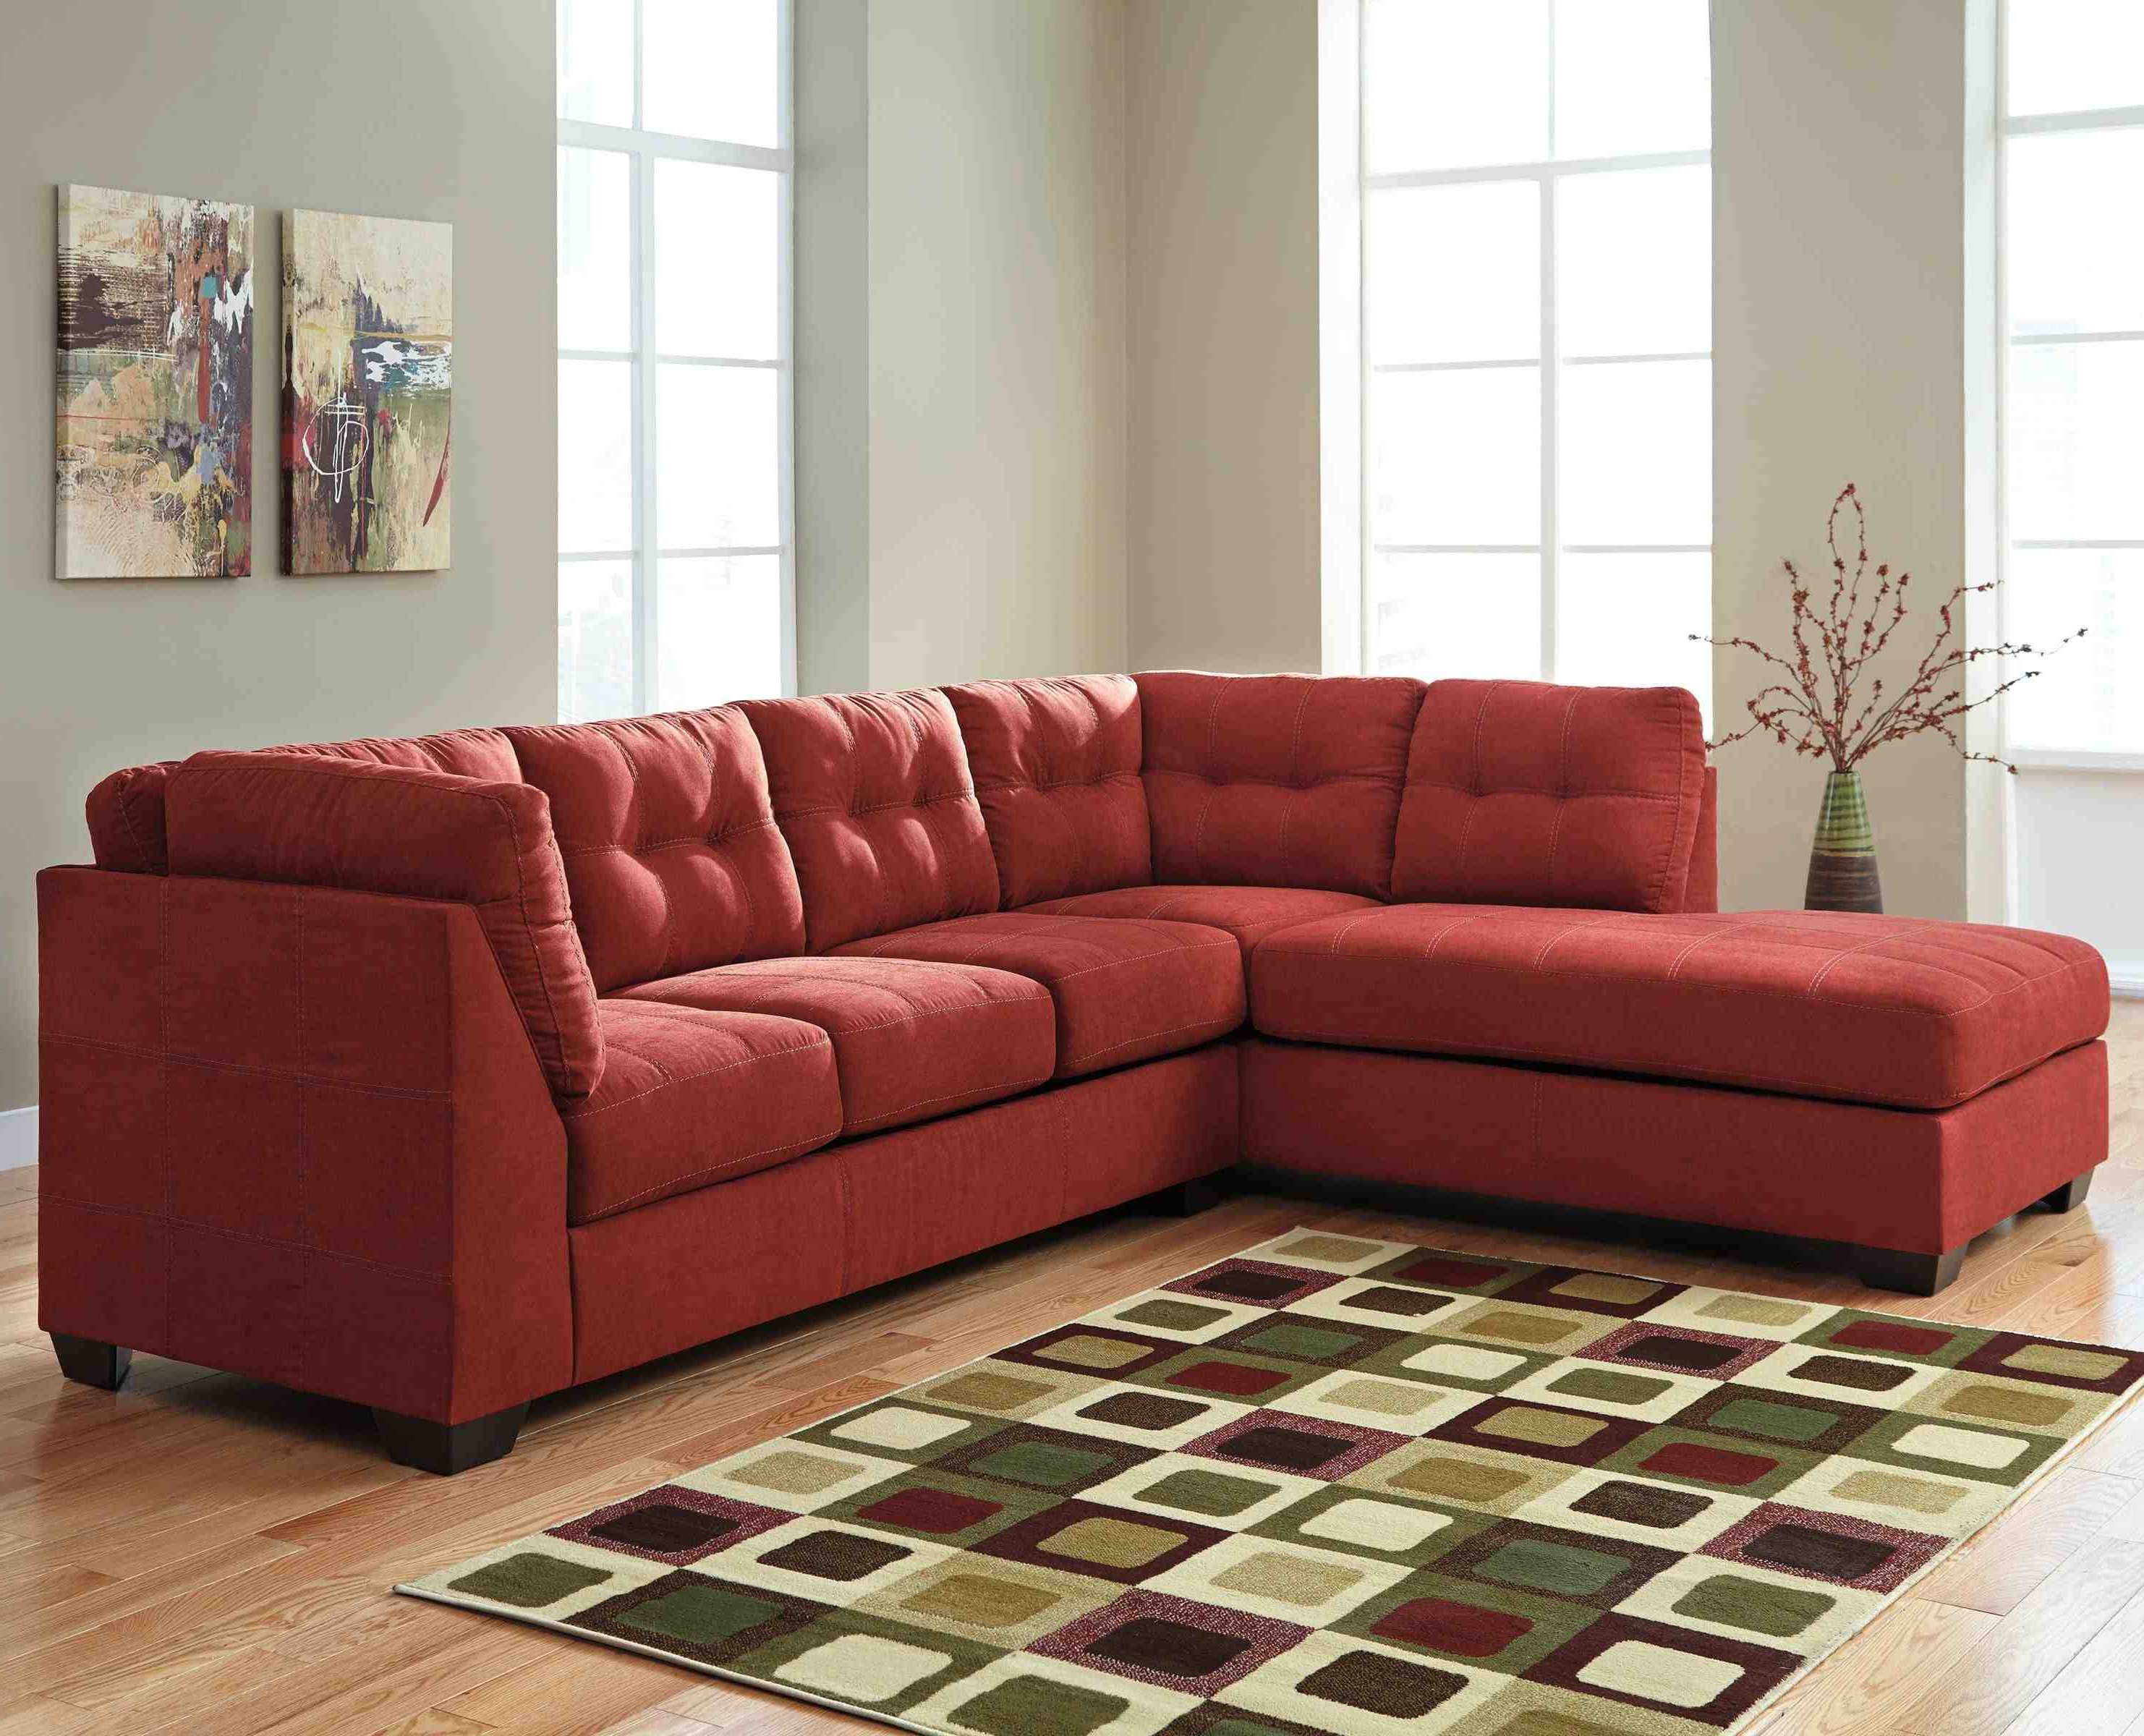 Fashionable Delano 2 Piece Sectional W/laf Oversized Chaise Living Spaces For Delano 2 Piece Sectionals With Laf Oversized Chaise (View 14 of 20)